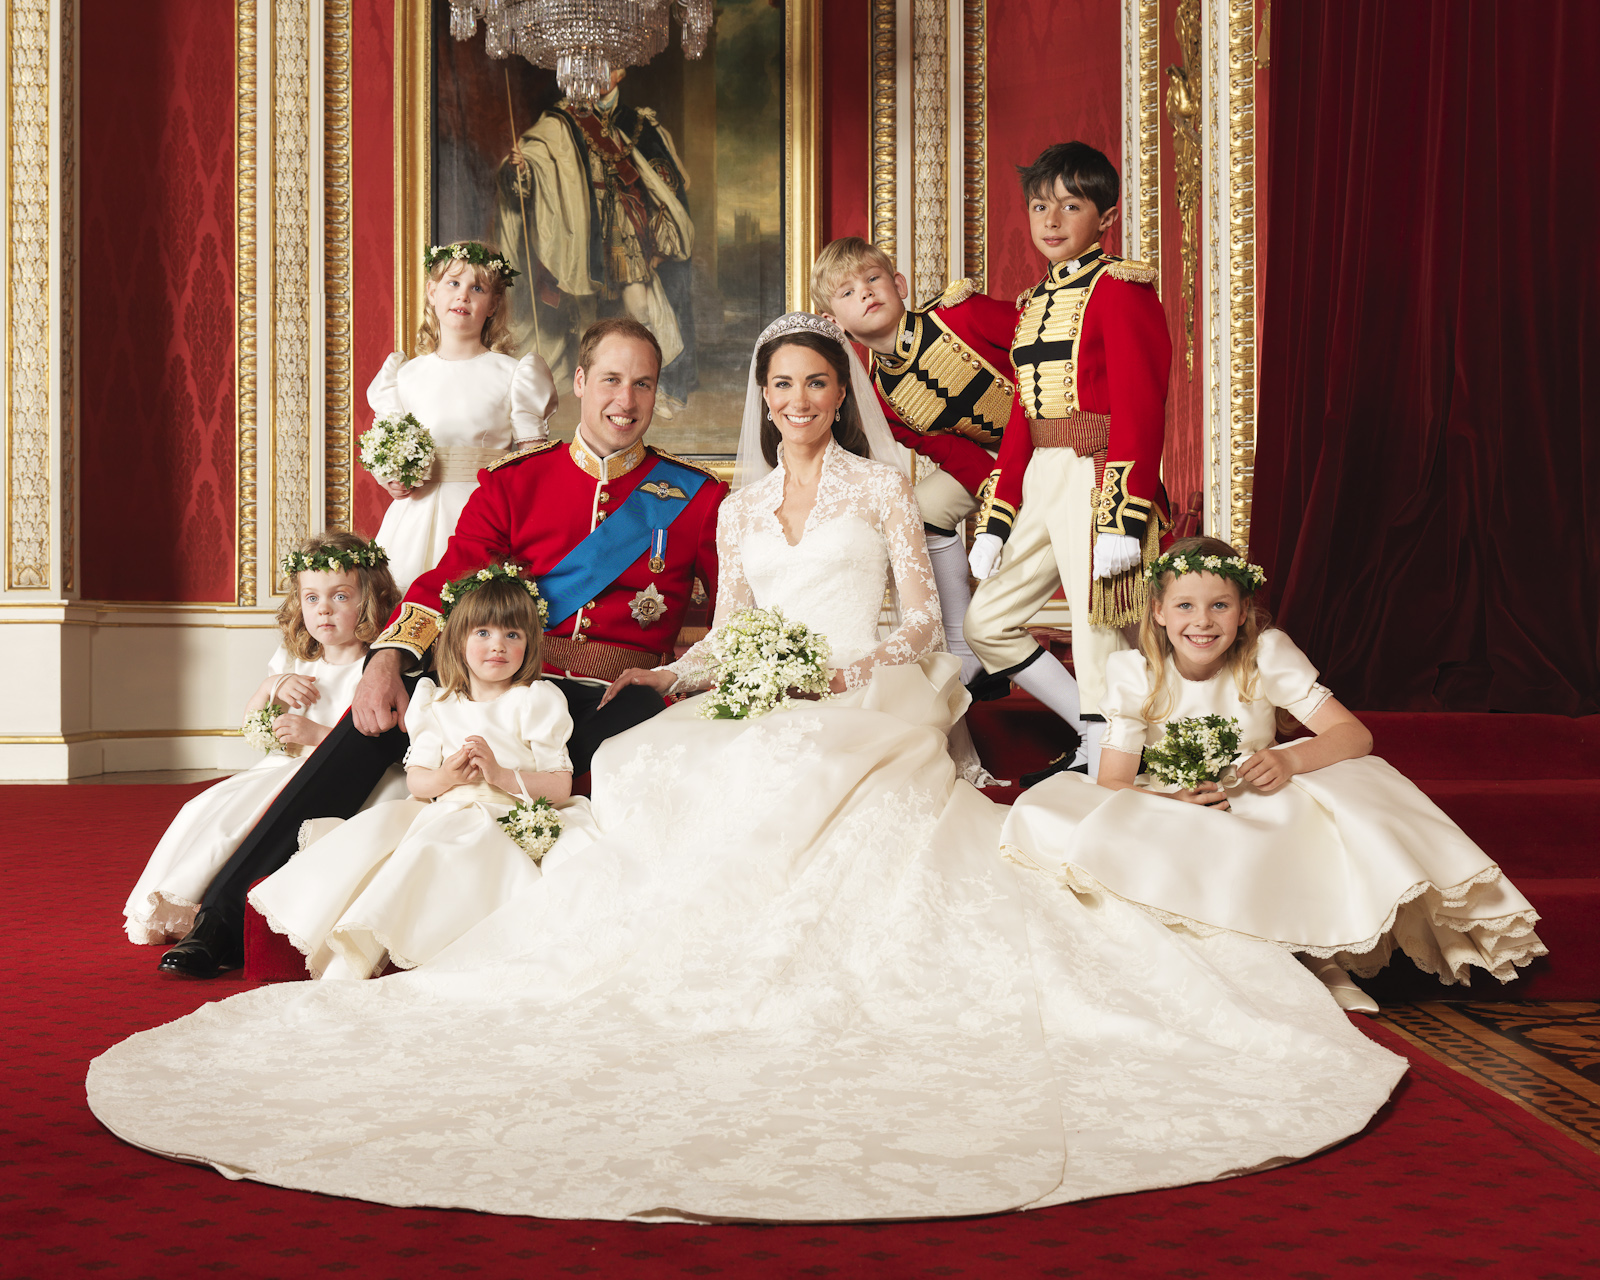 How Much Do British Royal Family Make Annually